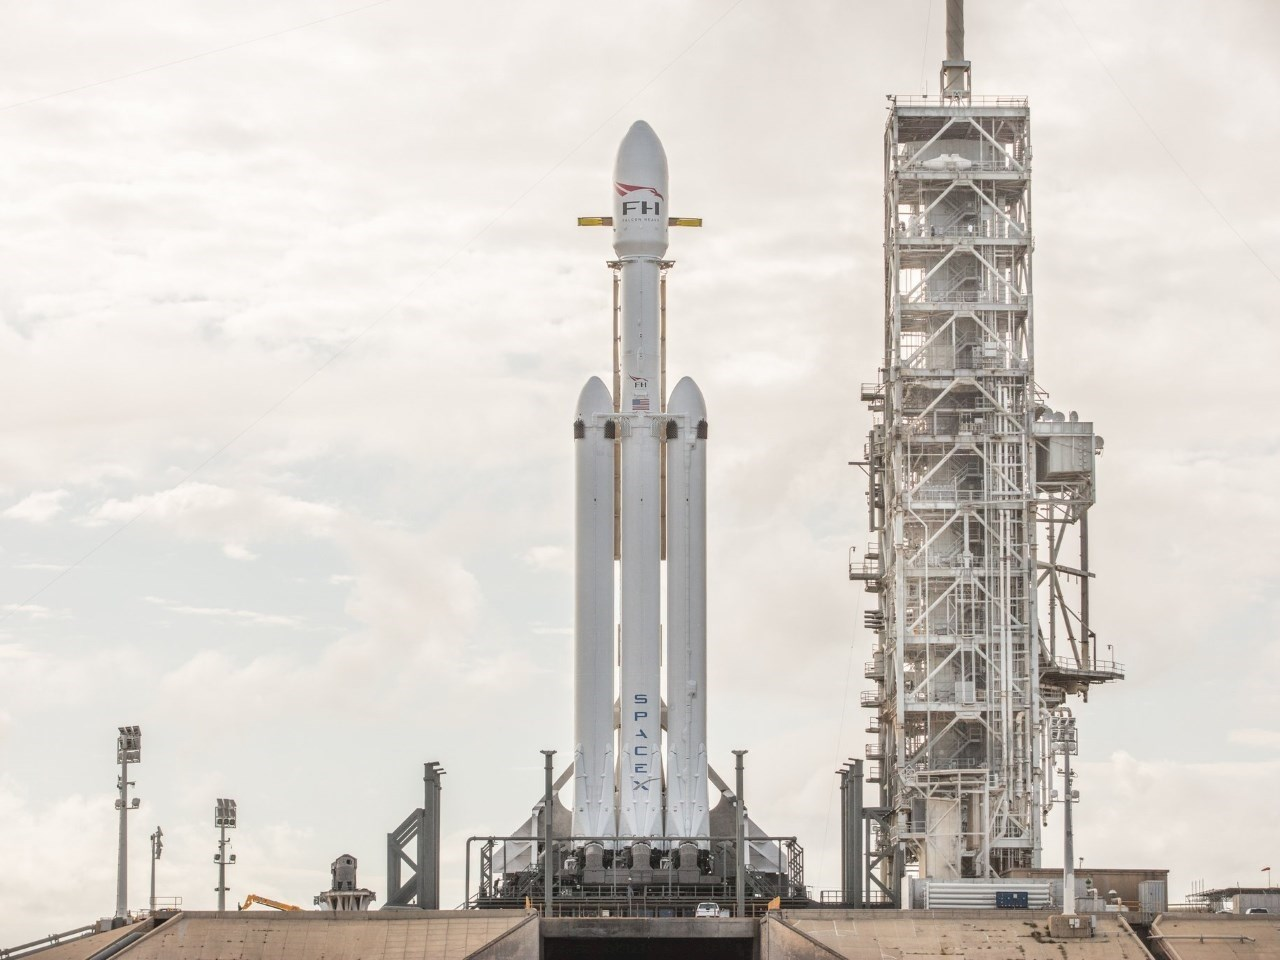 Falcon Heavy on the launch pad at Cape Canaveral